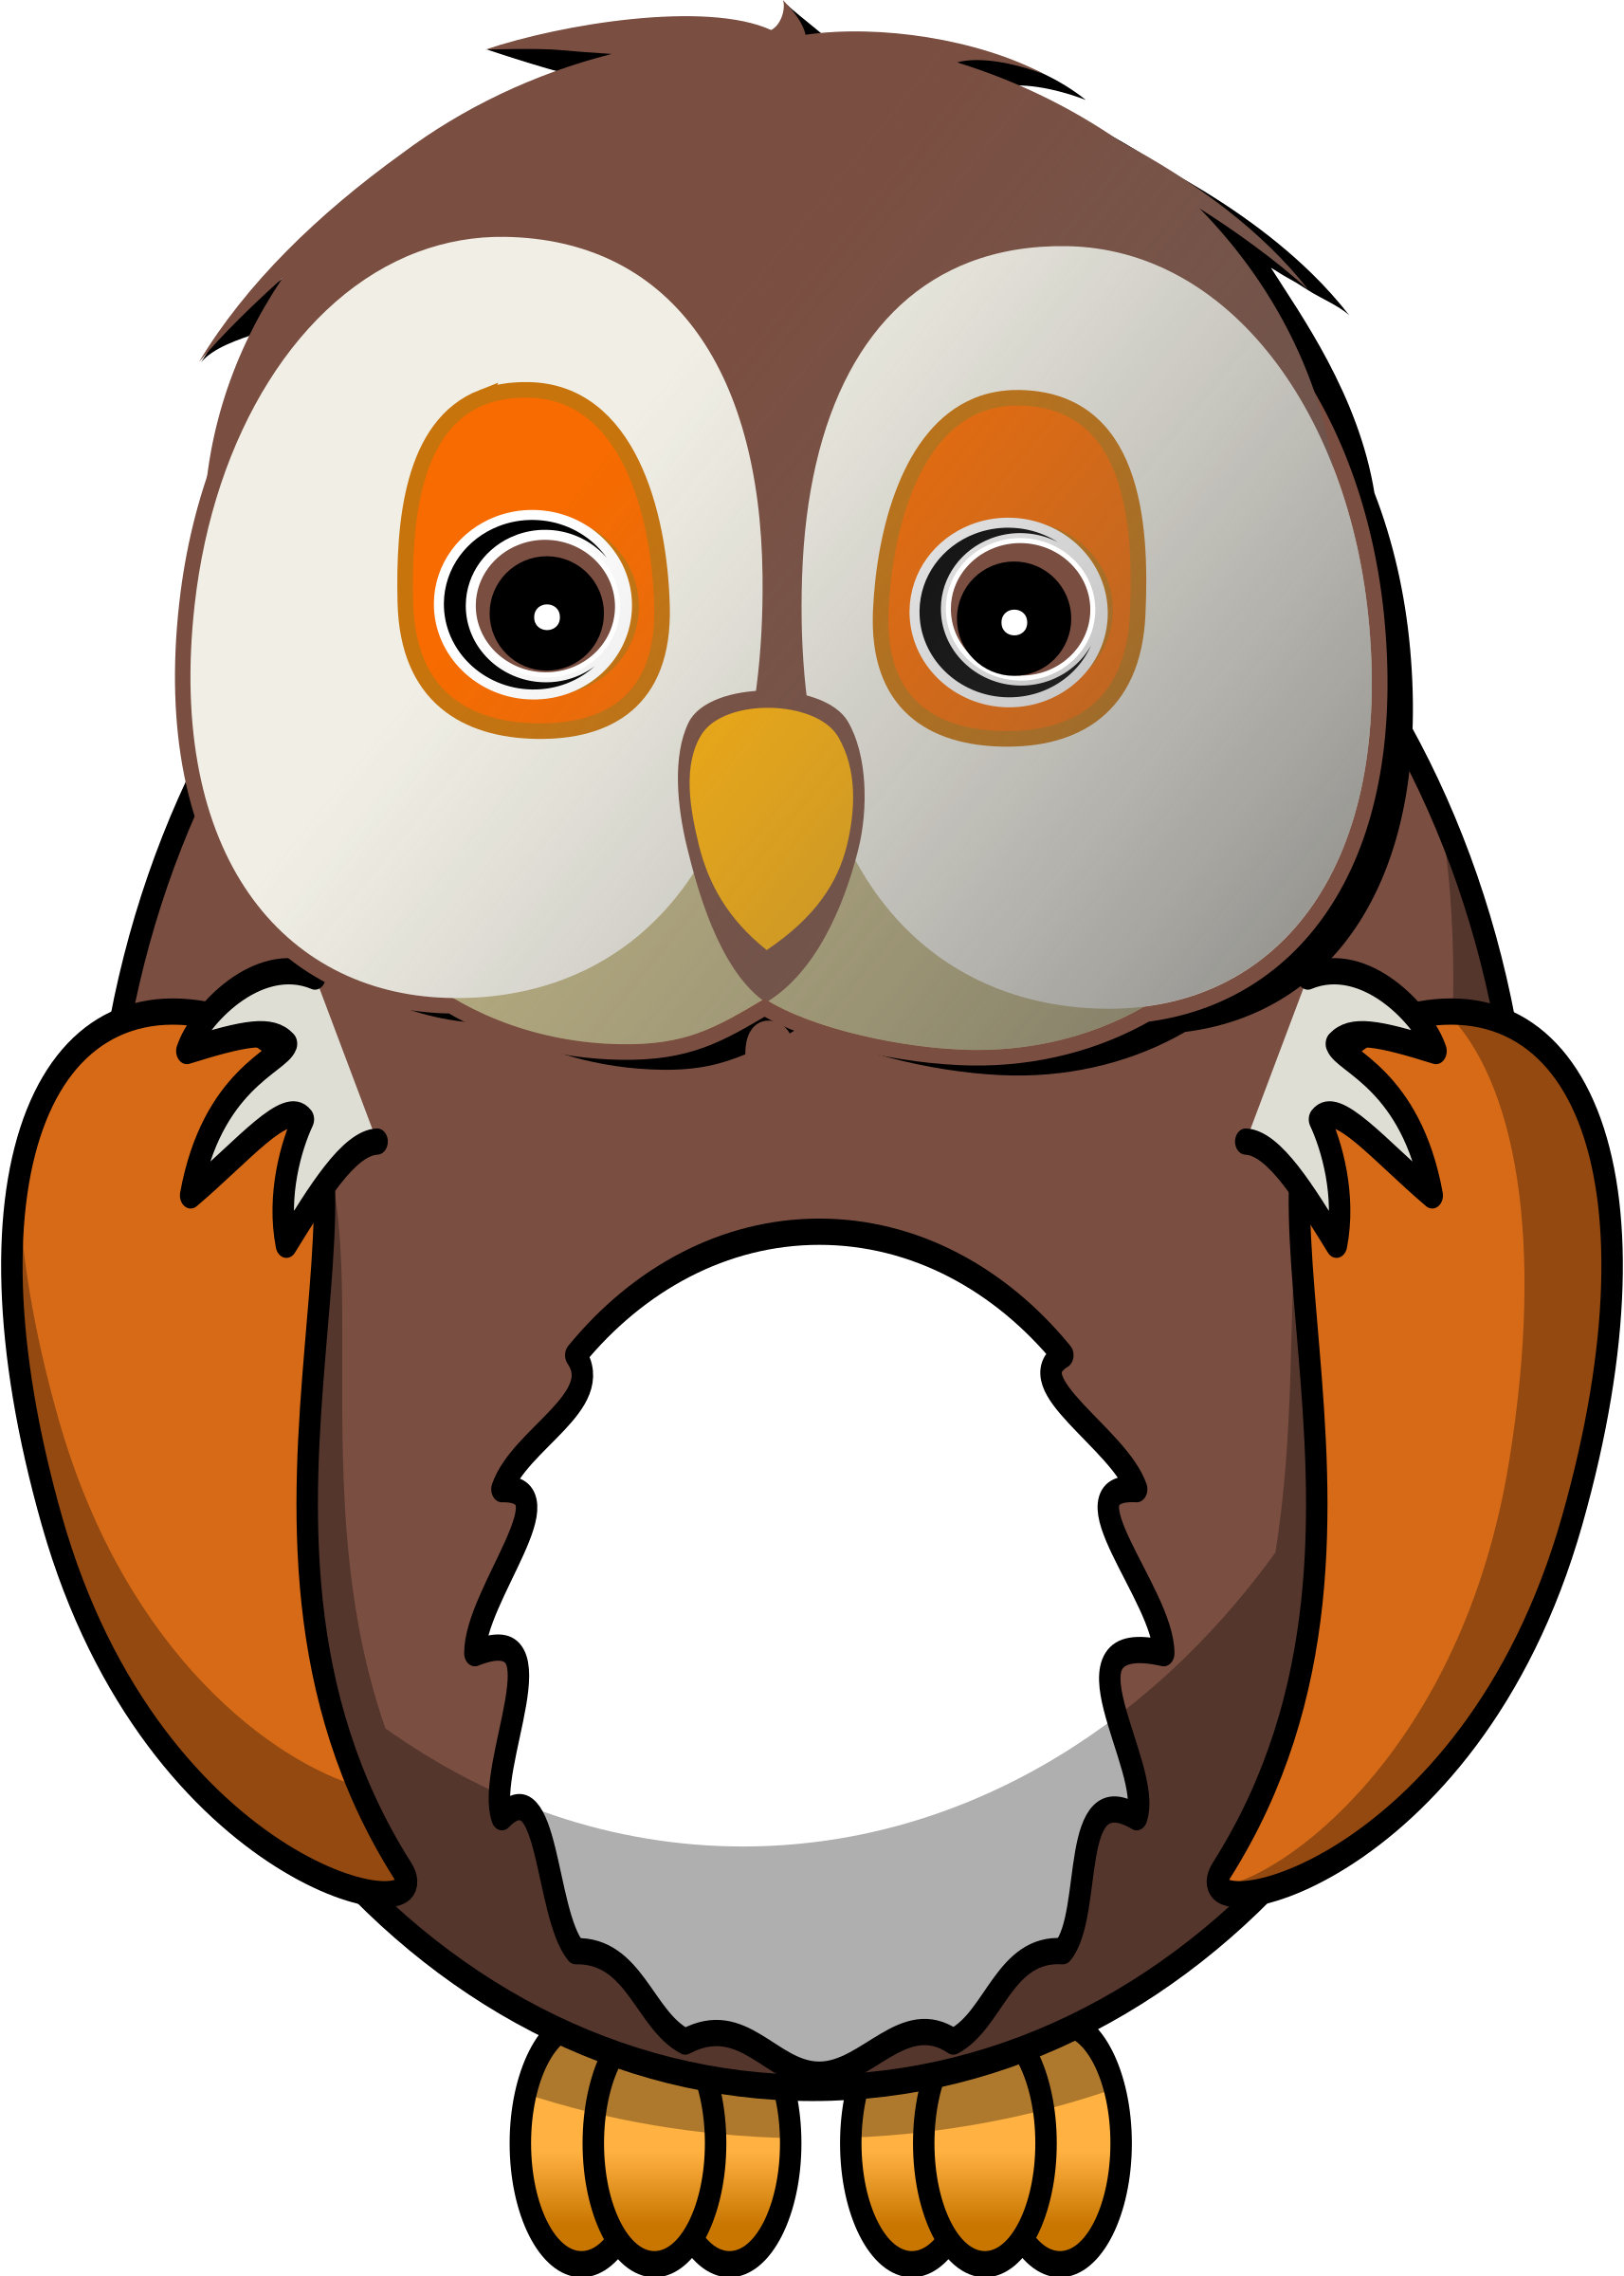 Big image png. Clipart phone owl